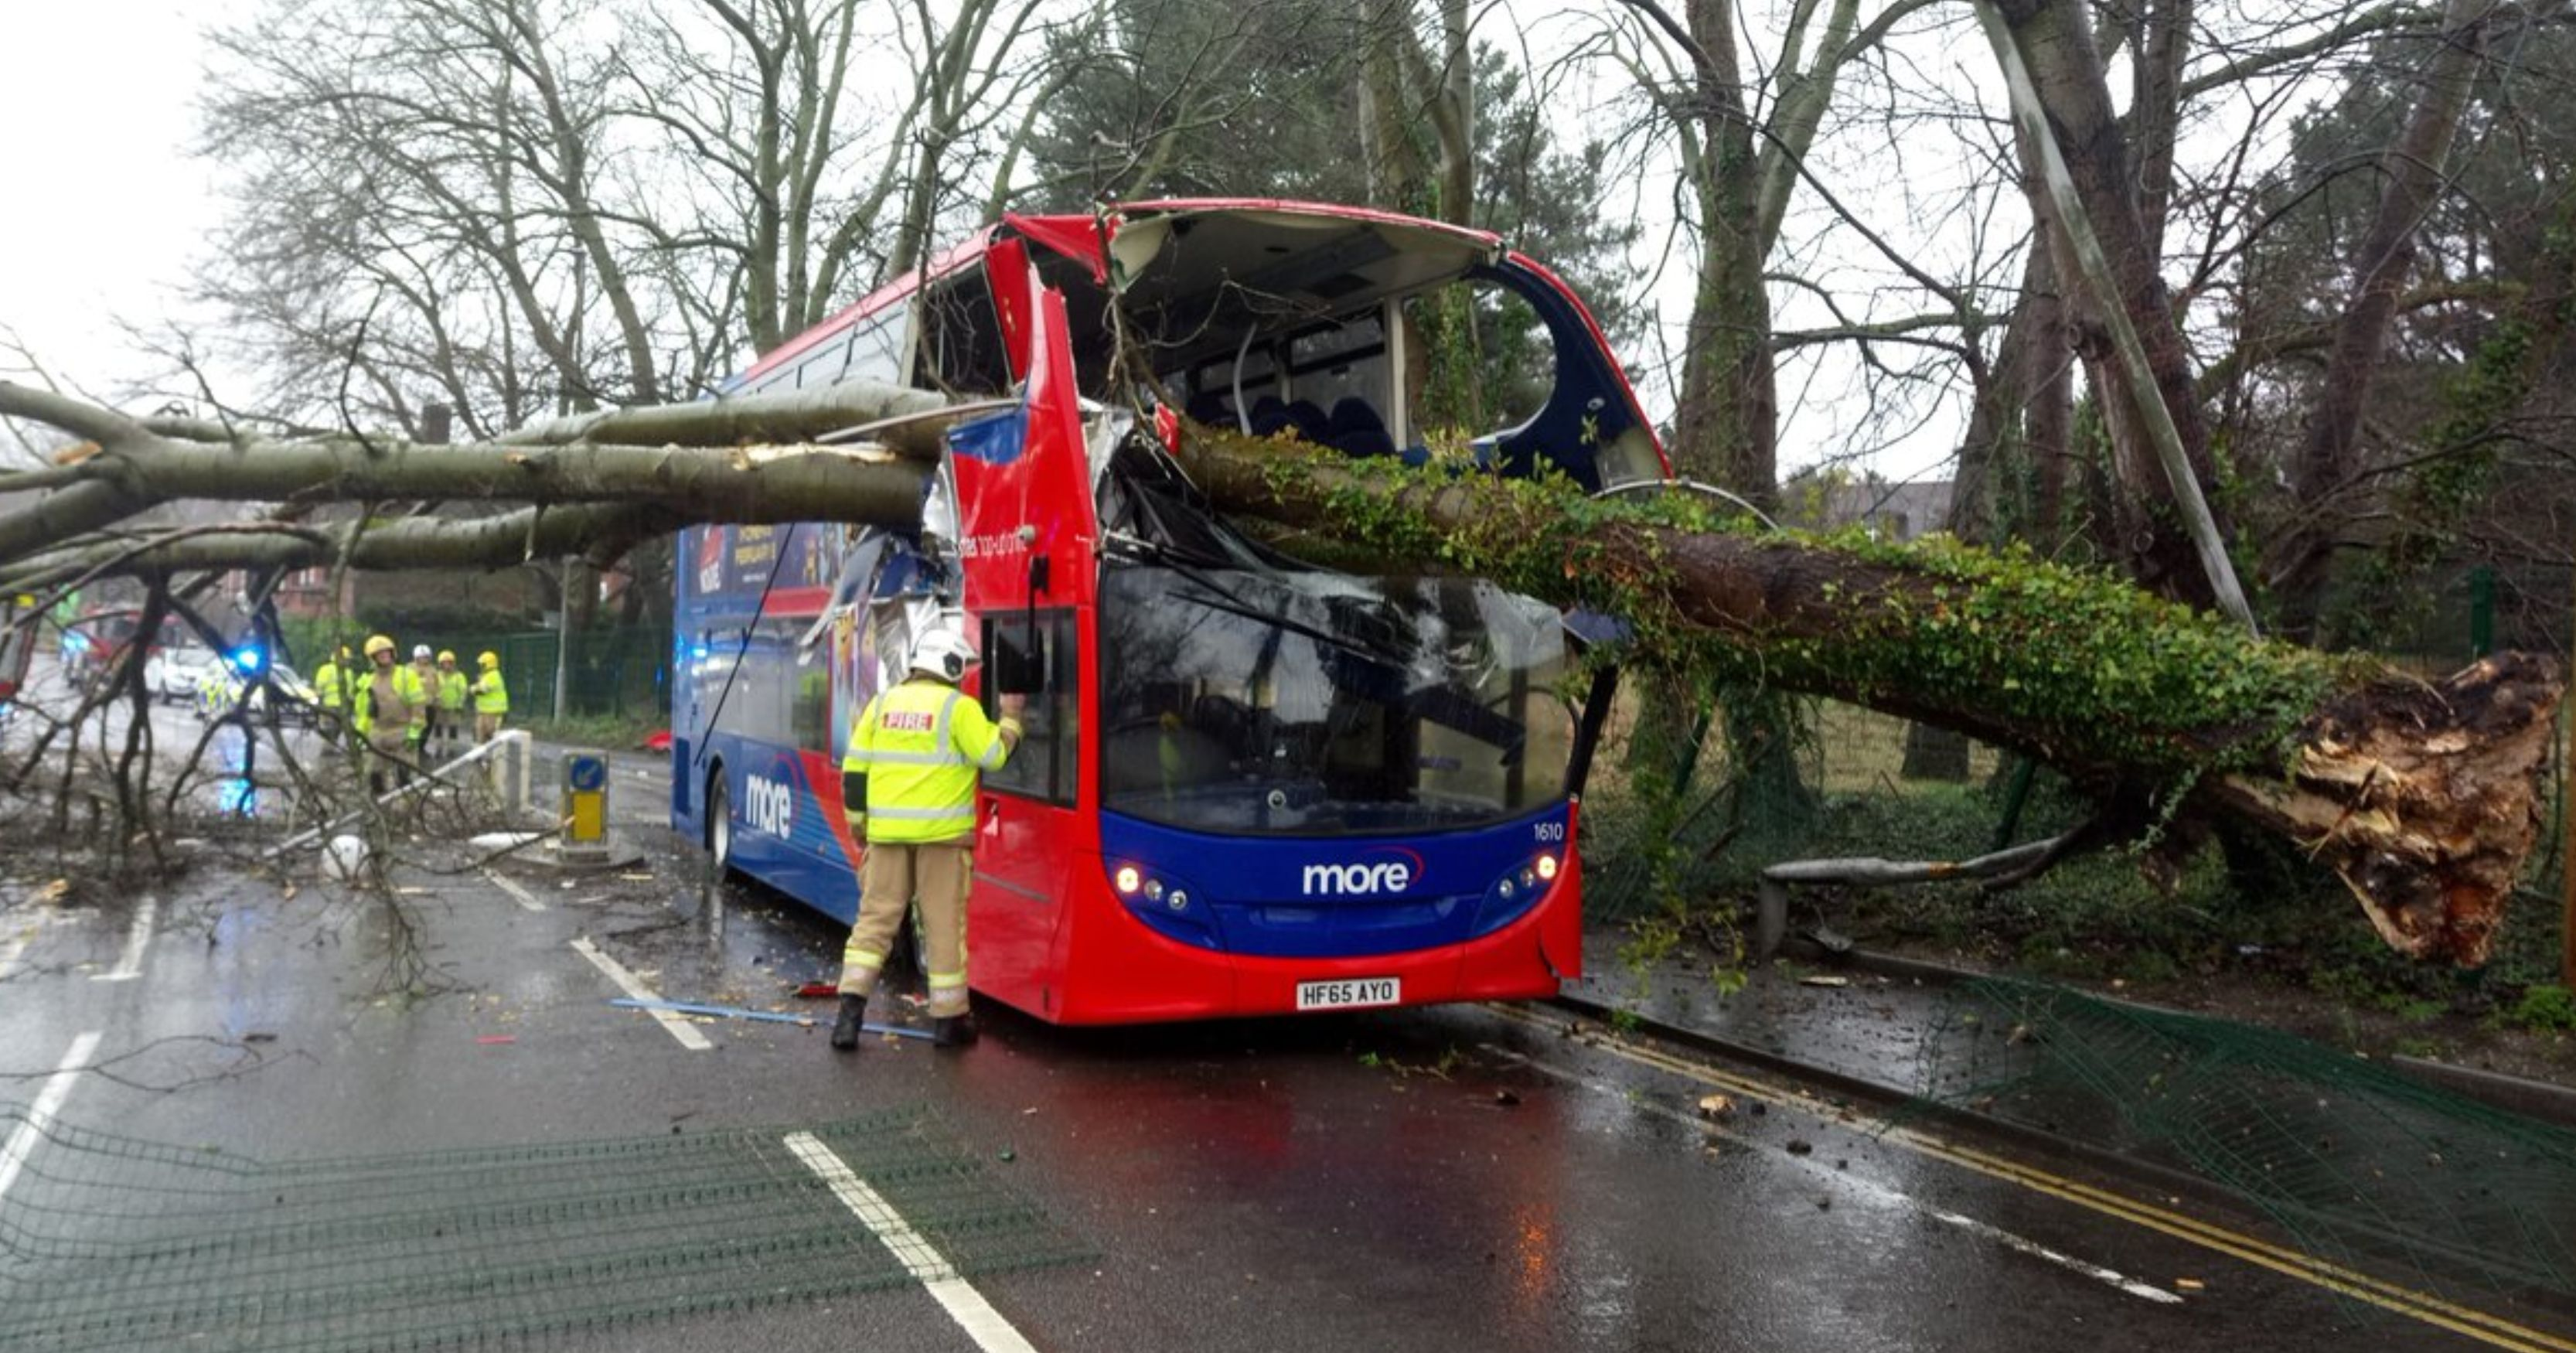 Storm Erik hits Oldham bringing strong winds and heavy rain